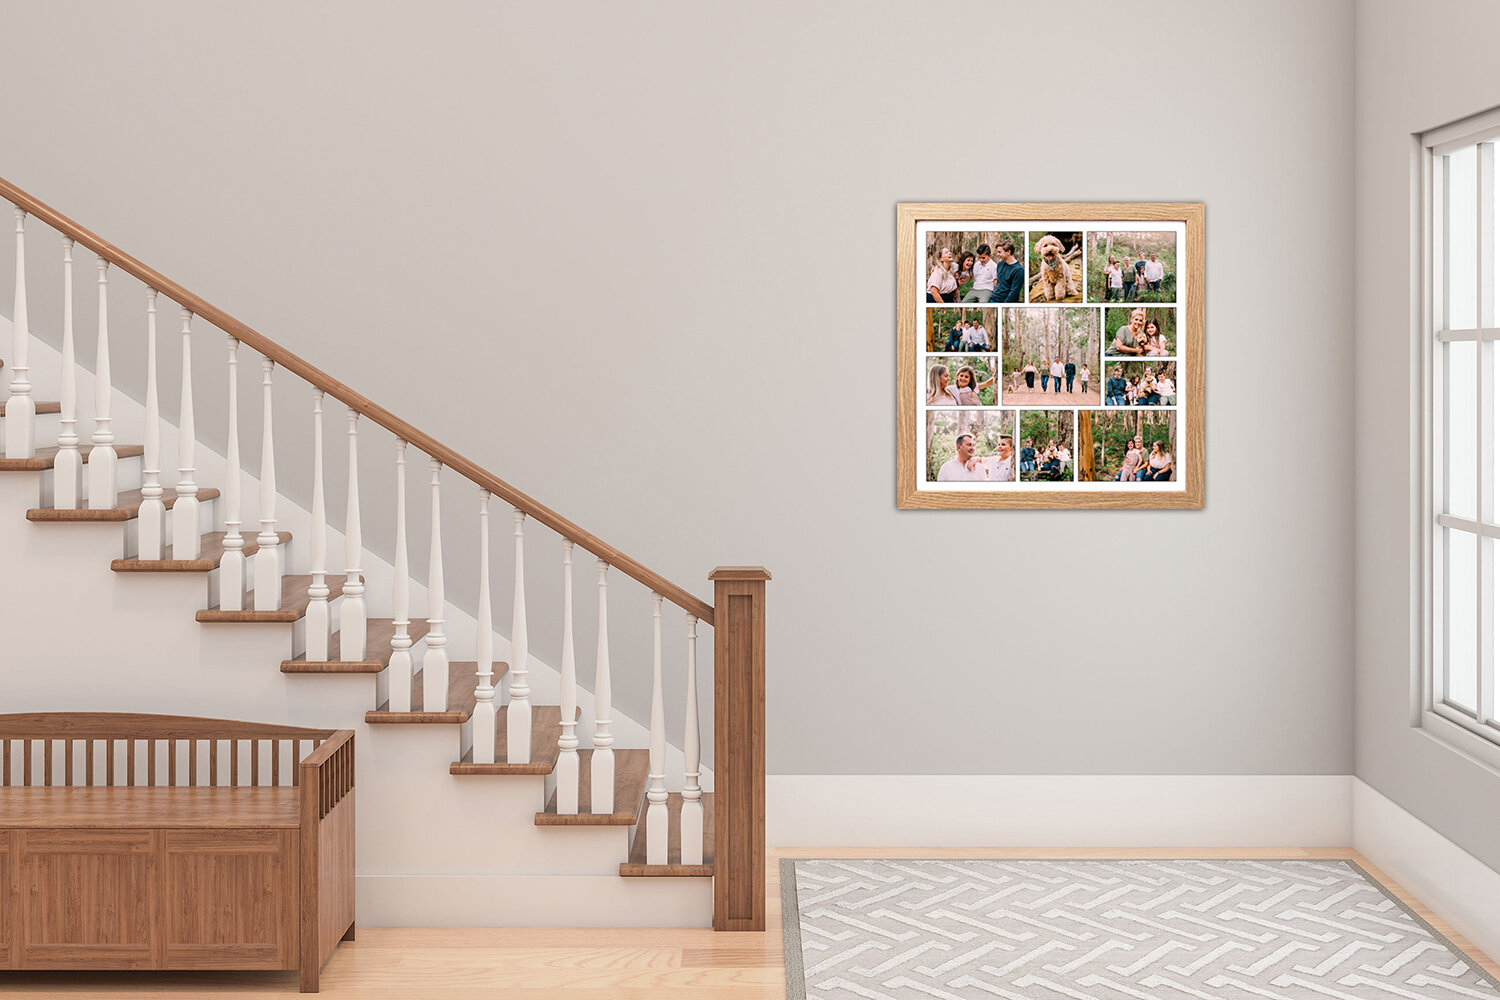 Staircase in house with beautiful photo collage displayed in light oak frame.jpg